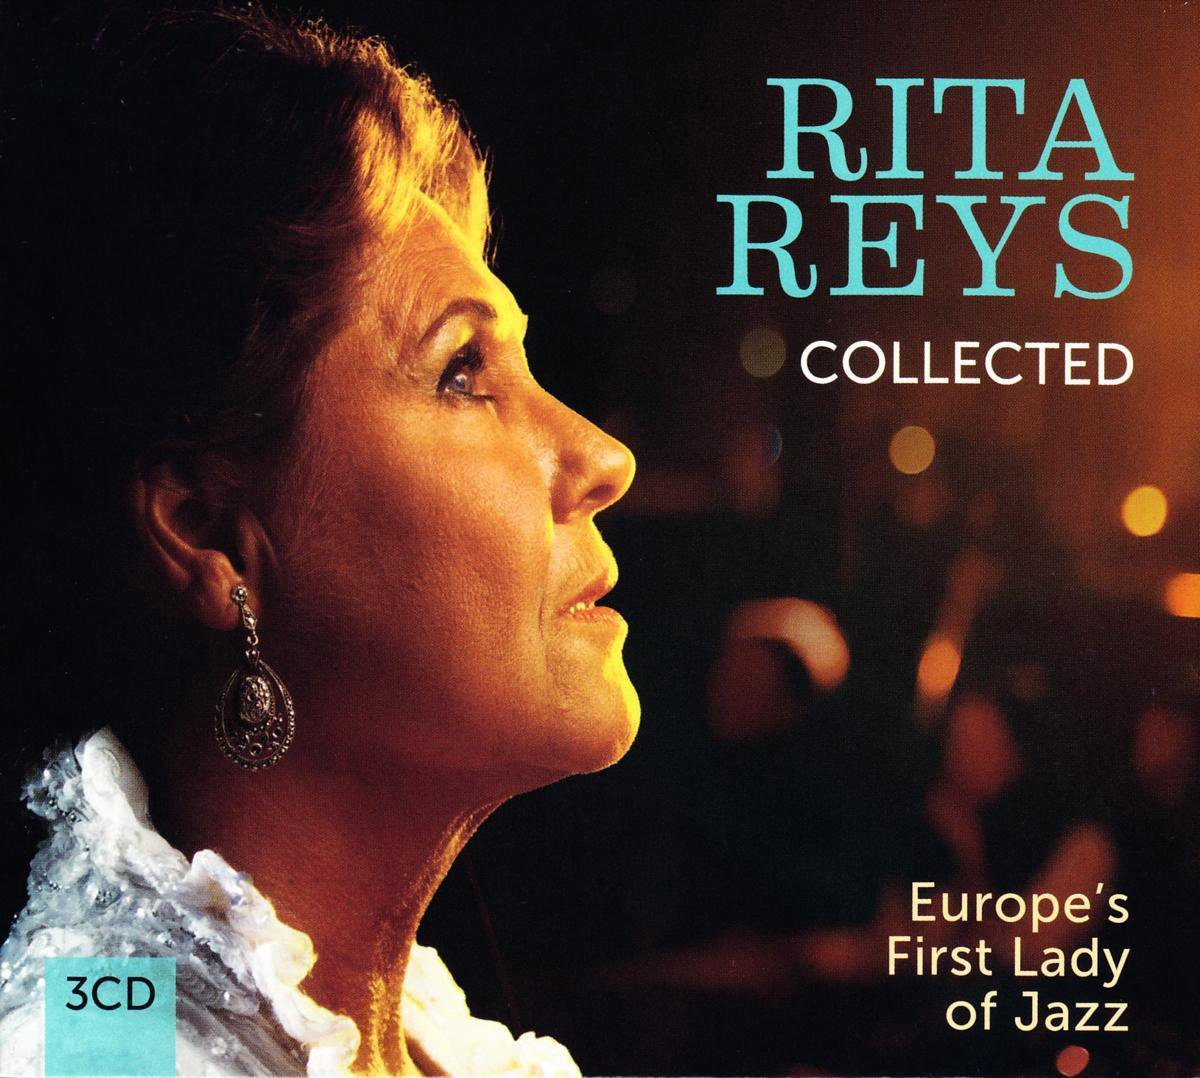 Collected - Rita Reys